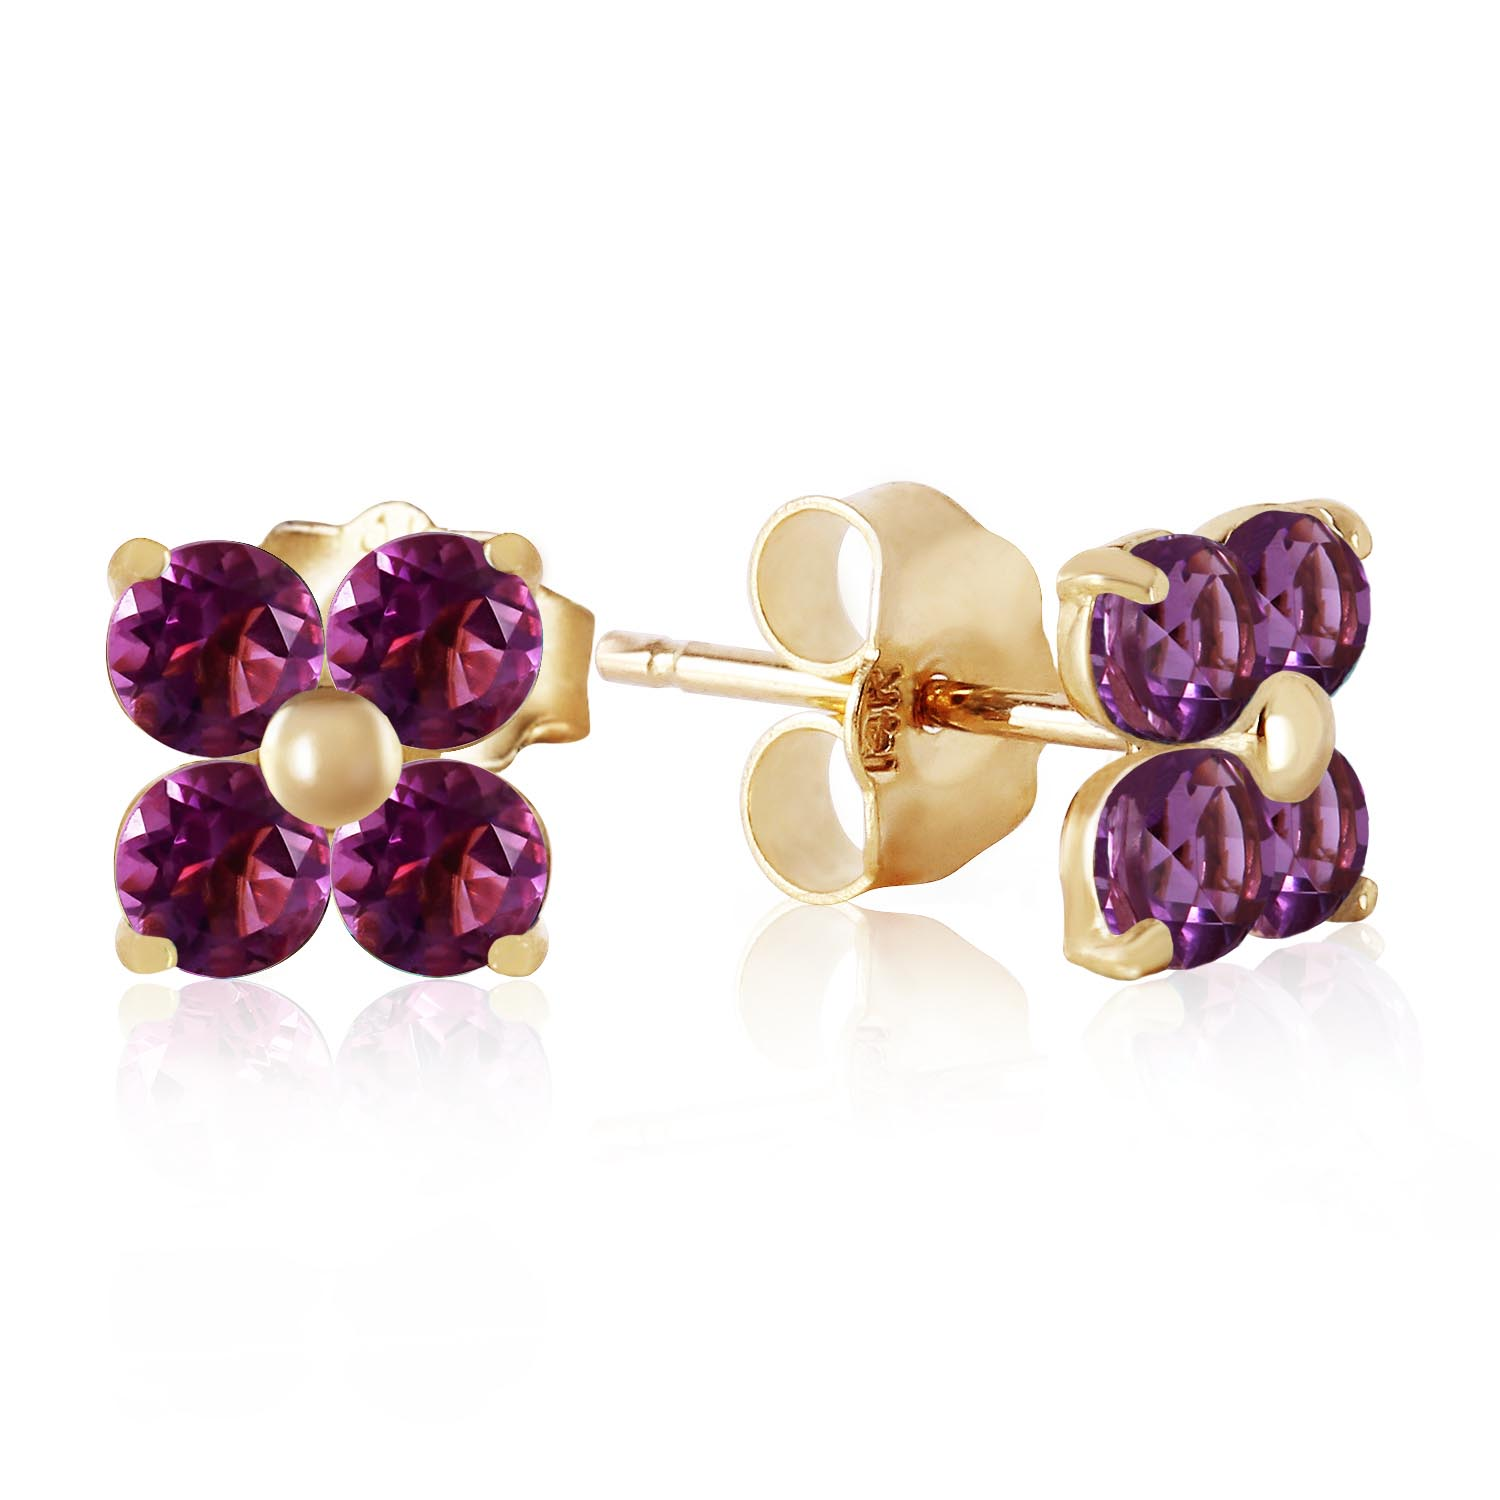 Amethyst Clover Stud Earrings 1.15ctw in 9ct Gold